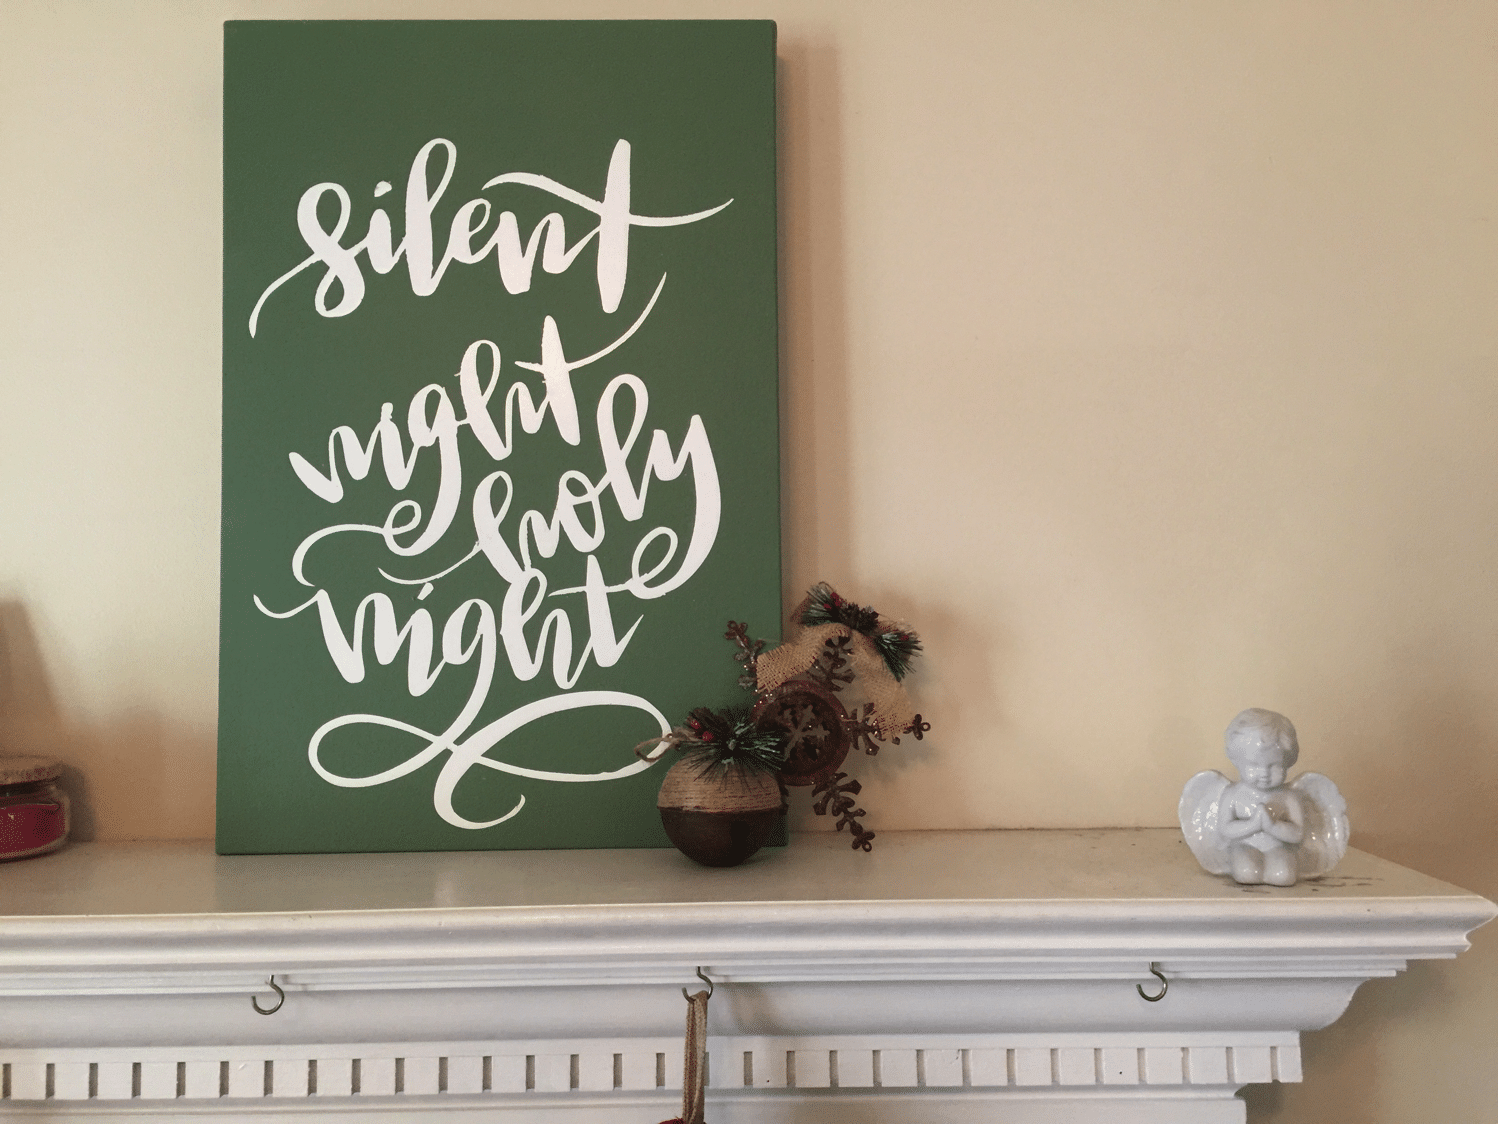 Transform old canvases into new art with silhouette | Black Friday Deals